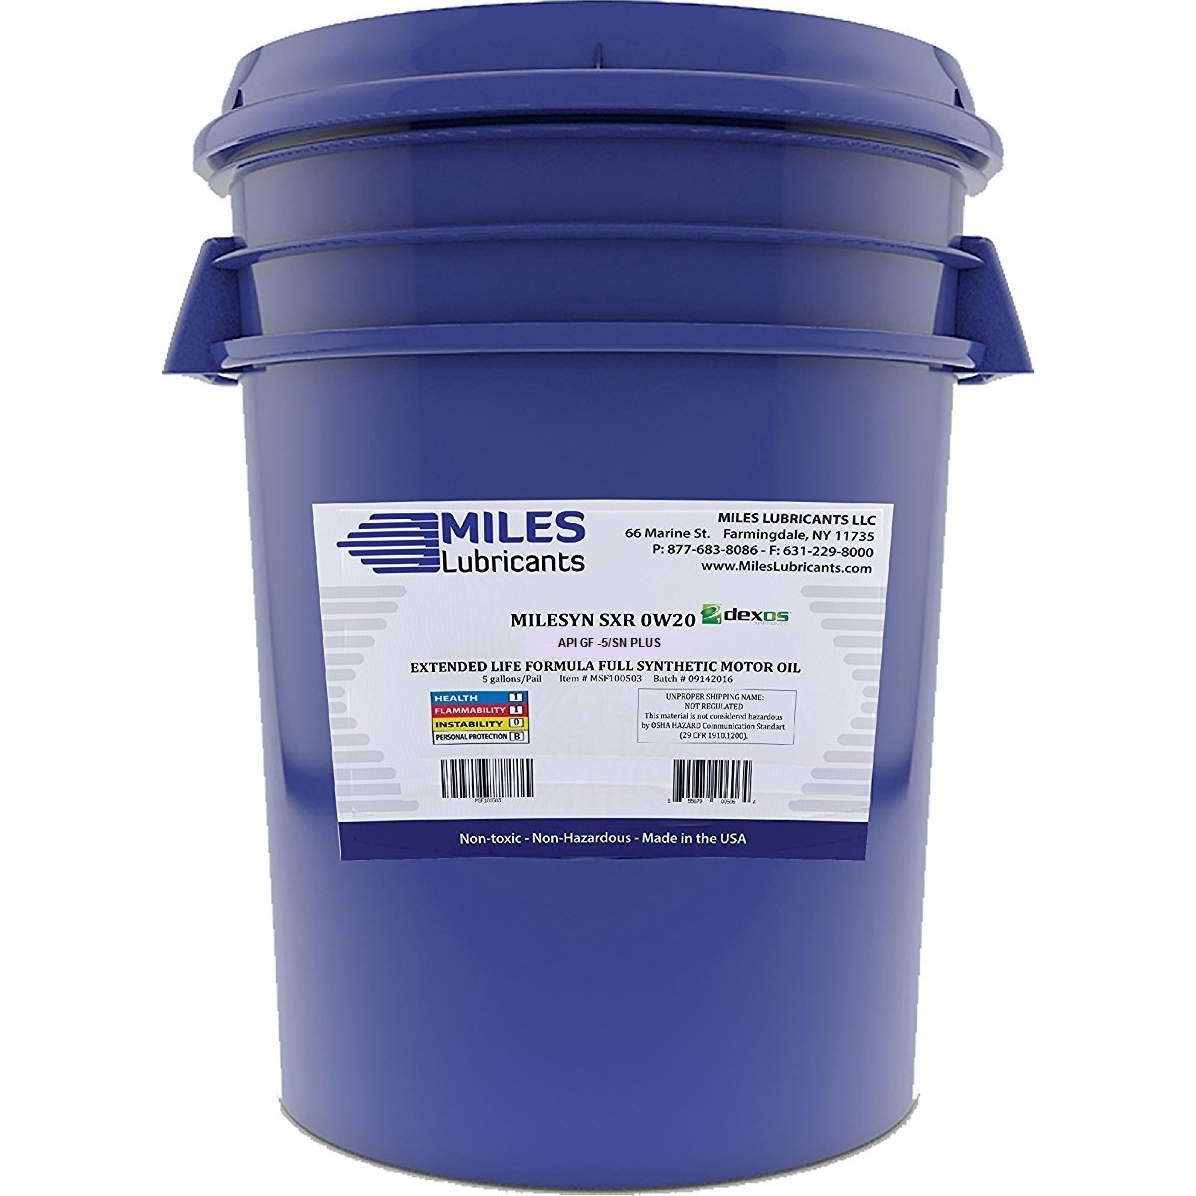 Milesyn SXR 0W20 API GF-5/SN, Dexos1, Full Synthetic Motor Oil, 5-Gallon Pail